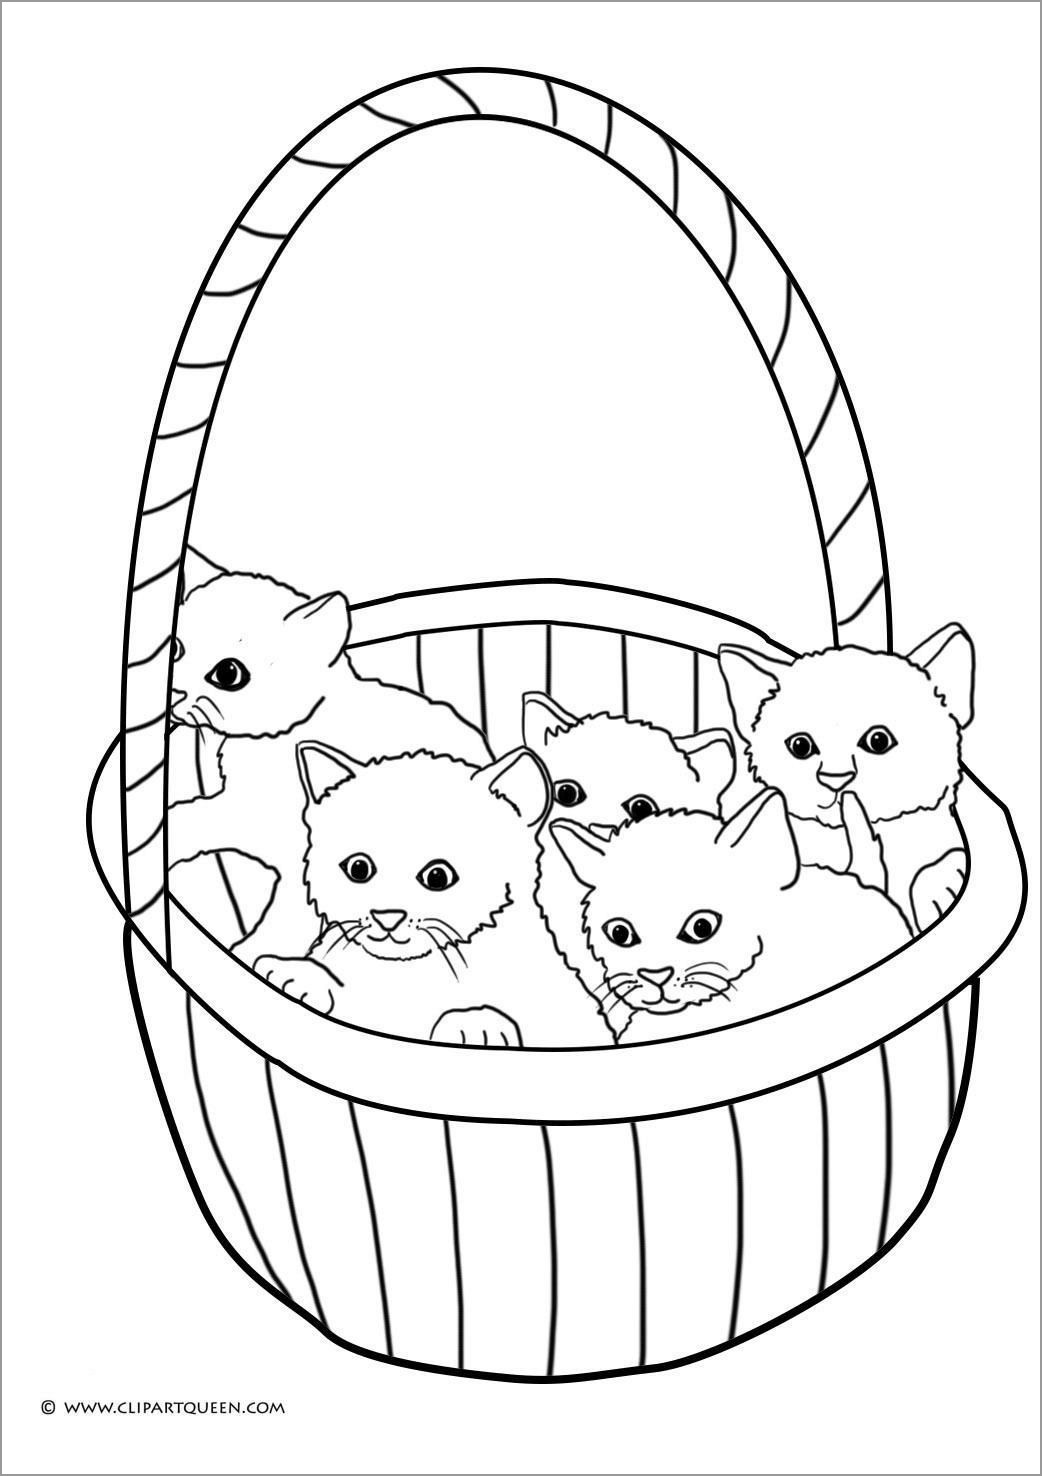 Baby Kitten Coloring Pages : kitten, coloring, pages, Kitten, Coloring, Pages, Preschoolers, ColoringBay